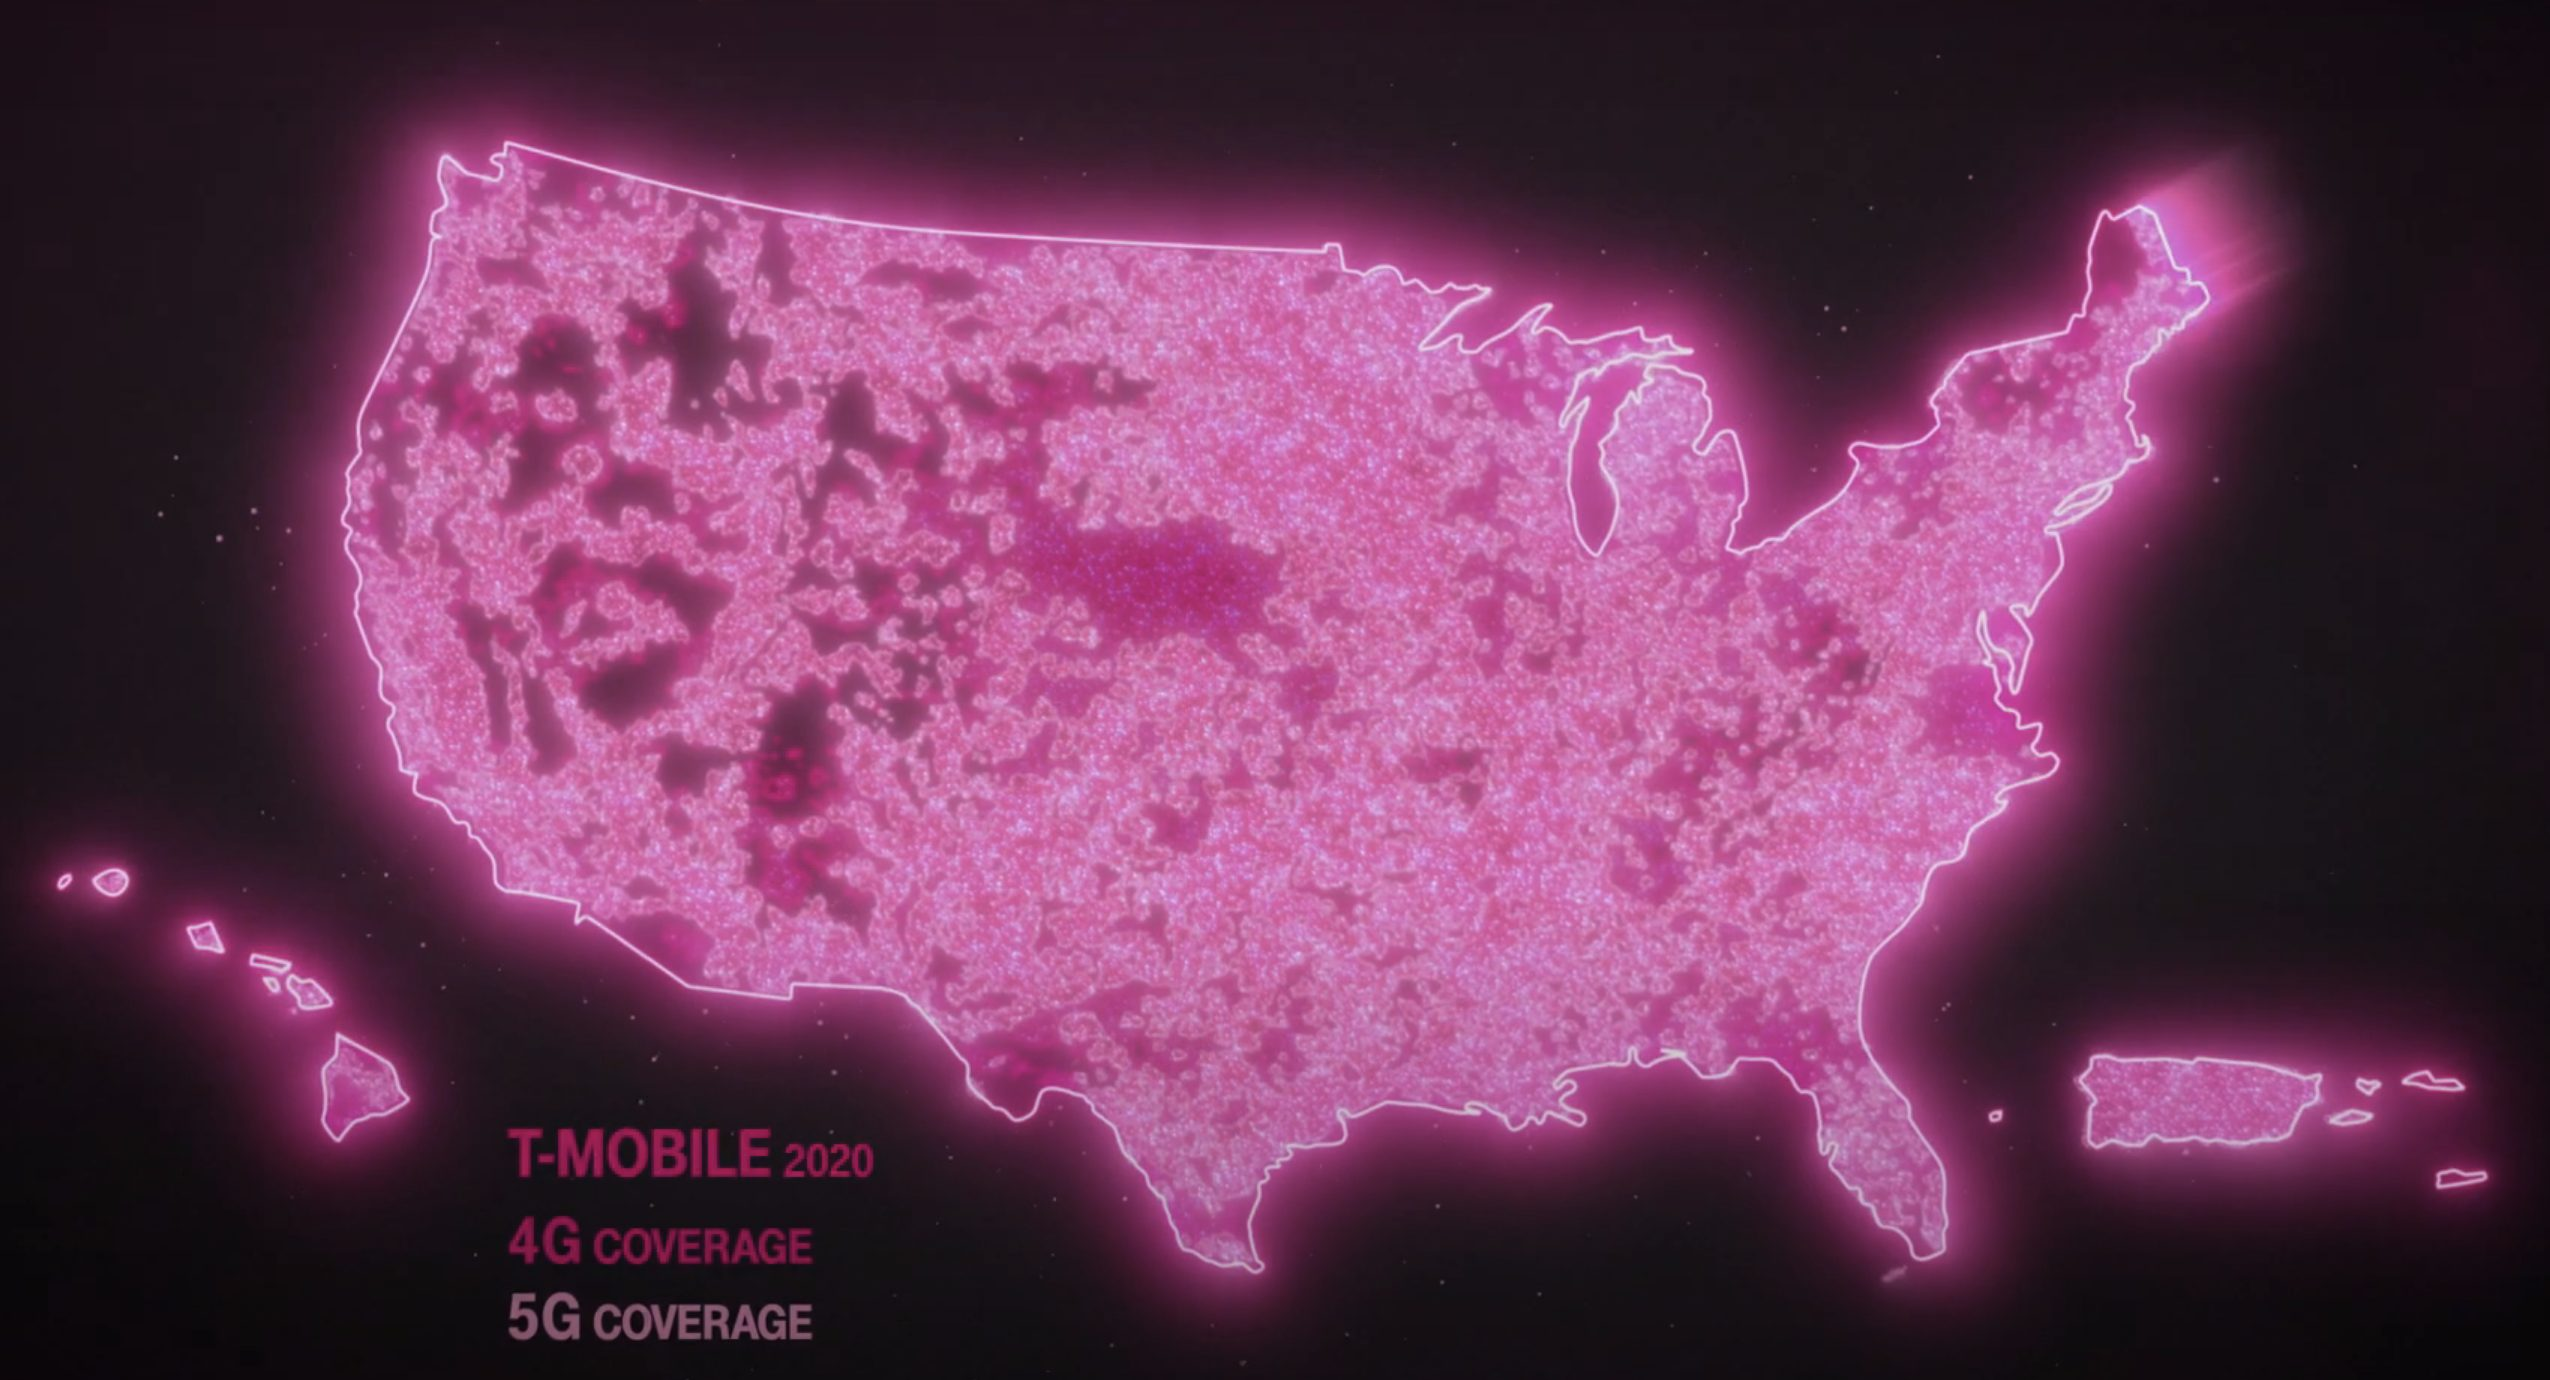 T-Mobile: Verizon 5G Speeds About To Hit a Massive Speed Bump